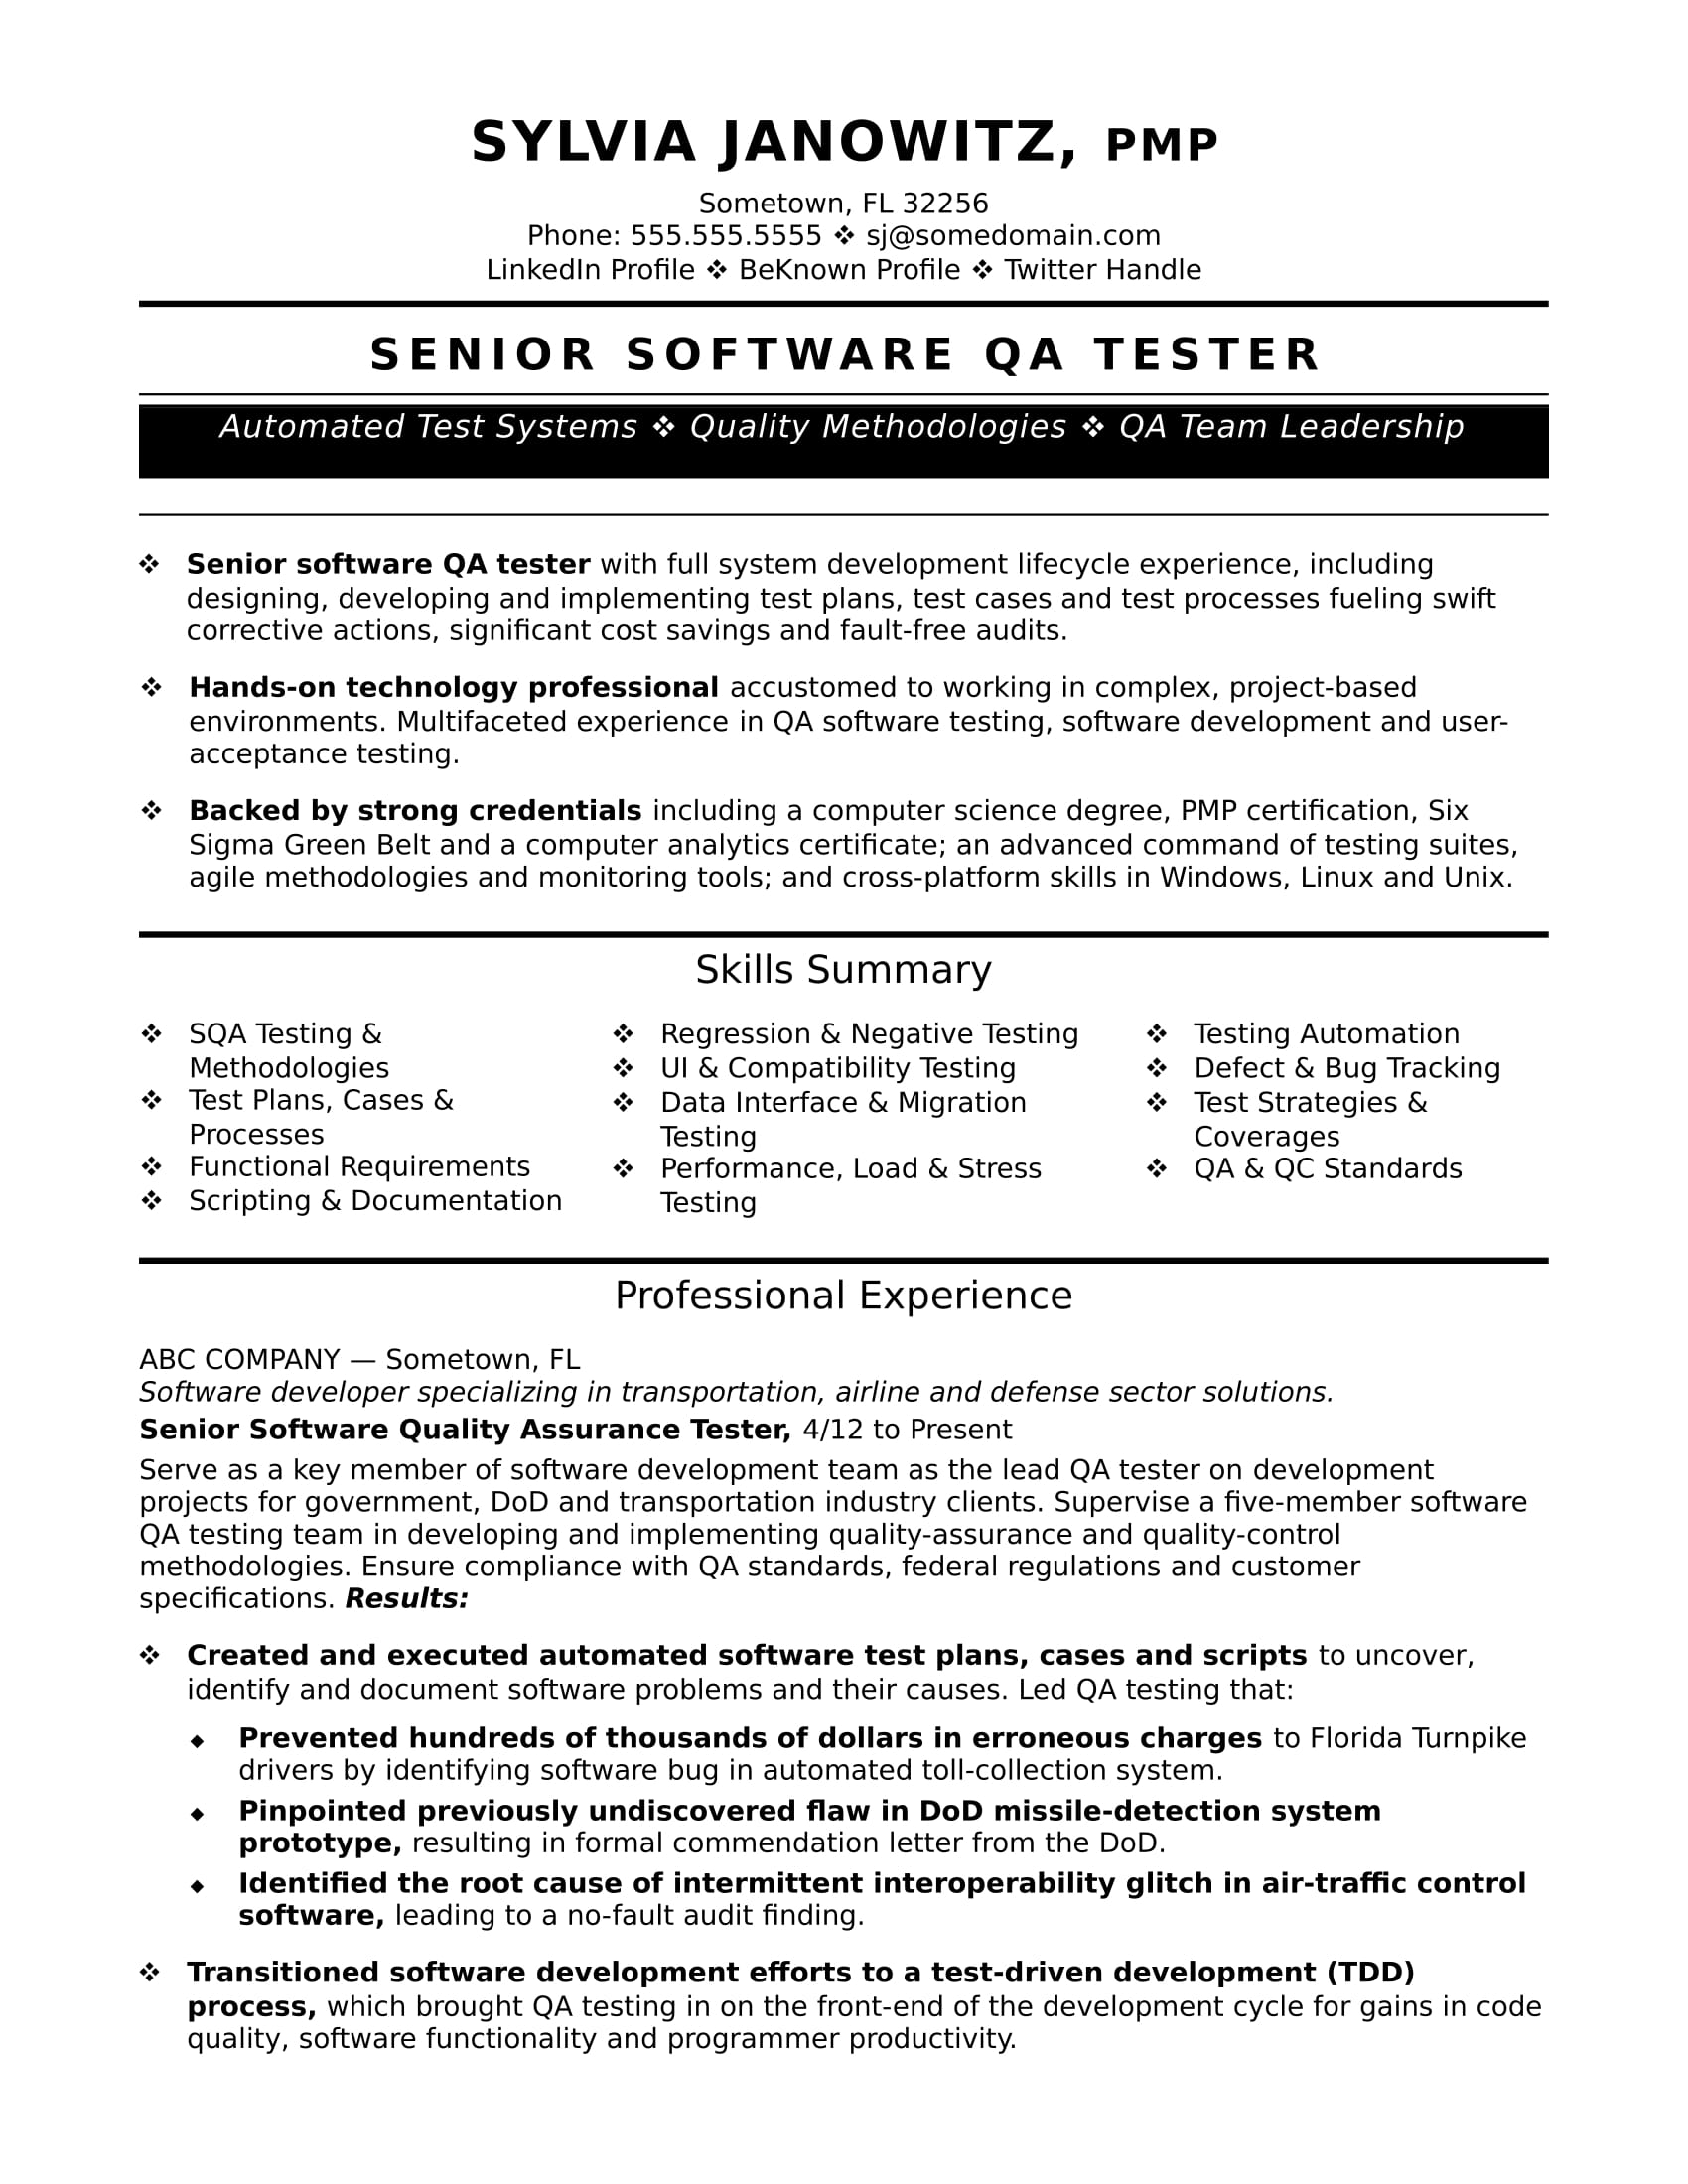 experienced qa software tester resume sample monster entry level operations manager Resume Entry Level Software Tester Resume Sample